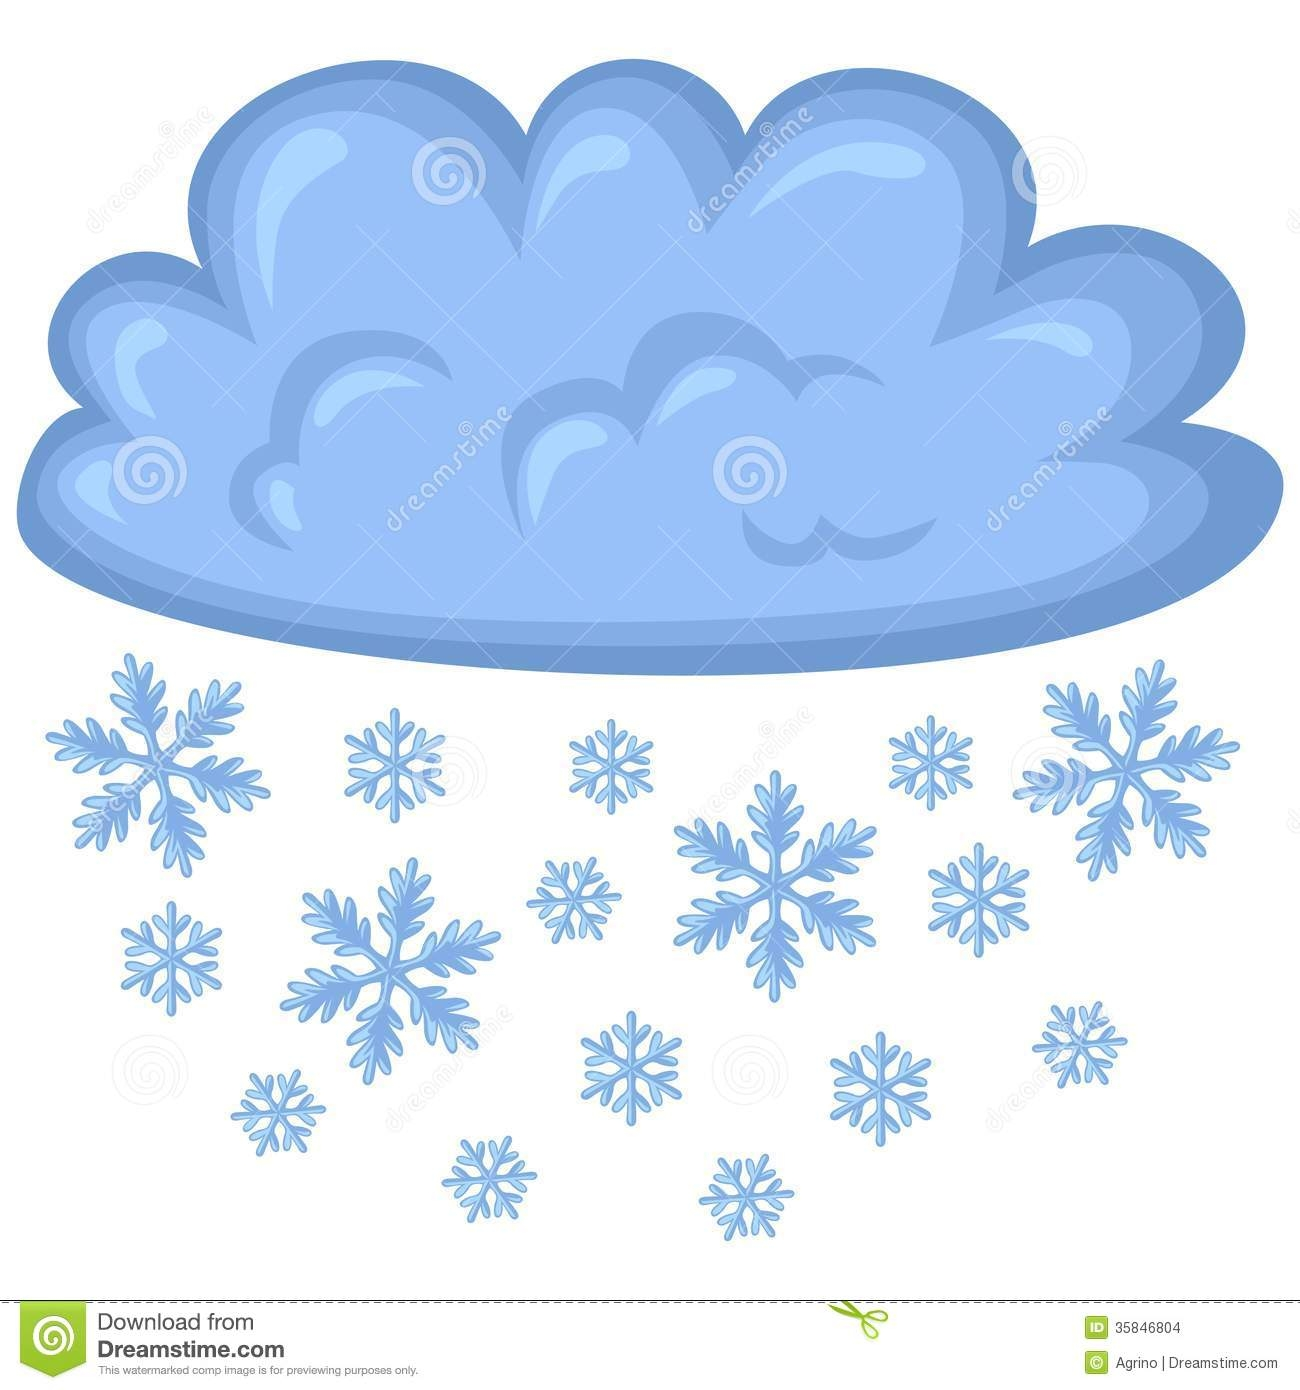 Season clipart snowy day #1